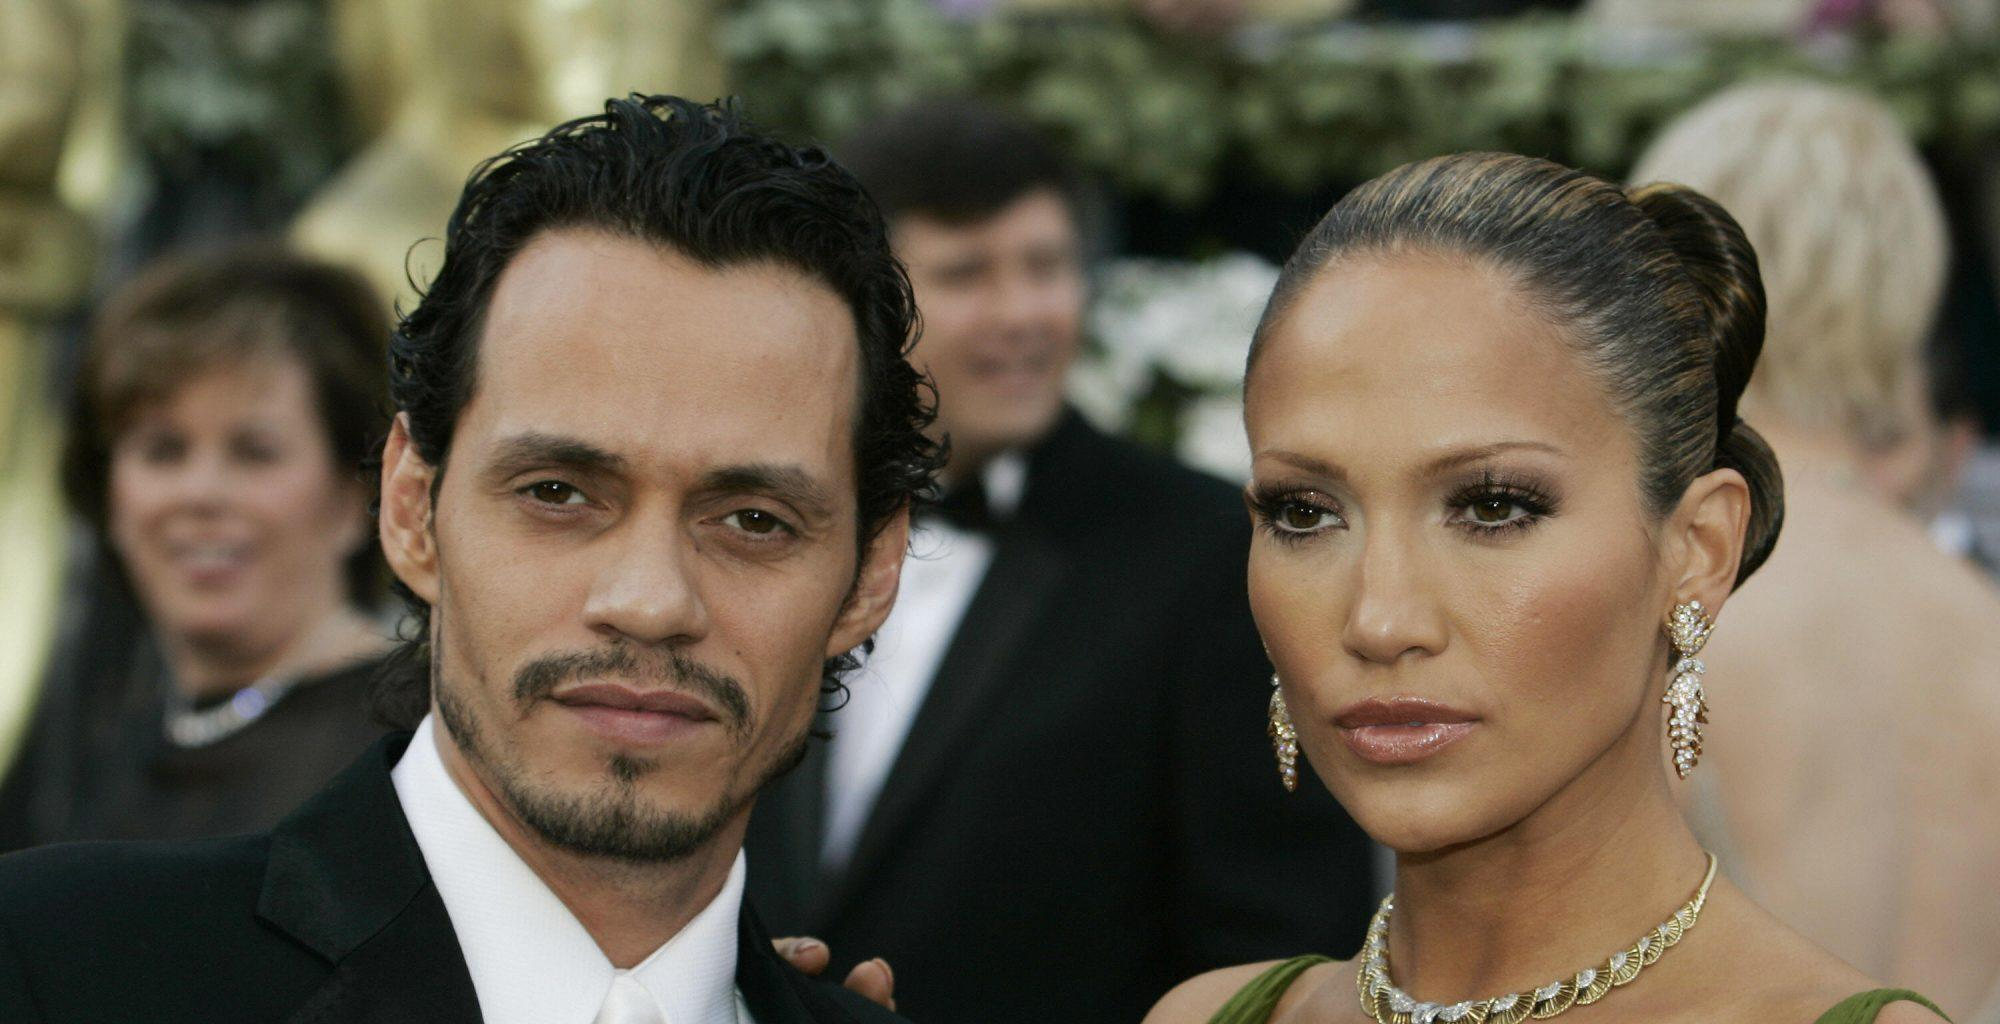 Marc Anthony - Here's How Jennifer Lopez's Ex-Husband Feels About Her Reuniting With Ben Affleck